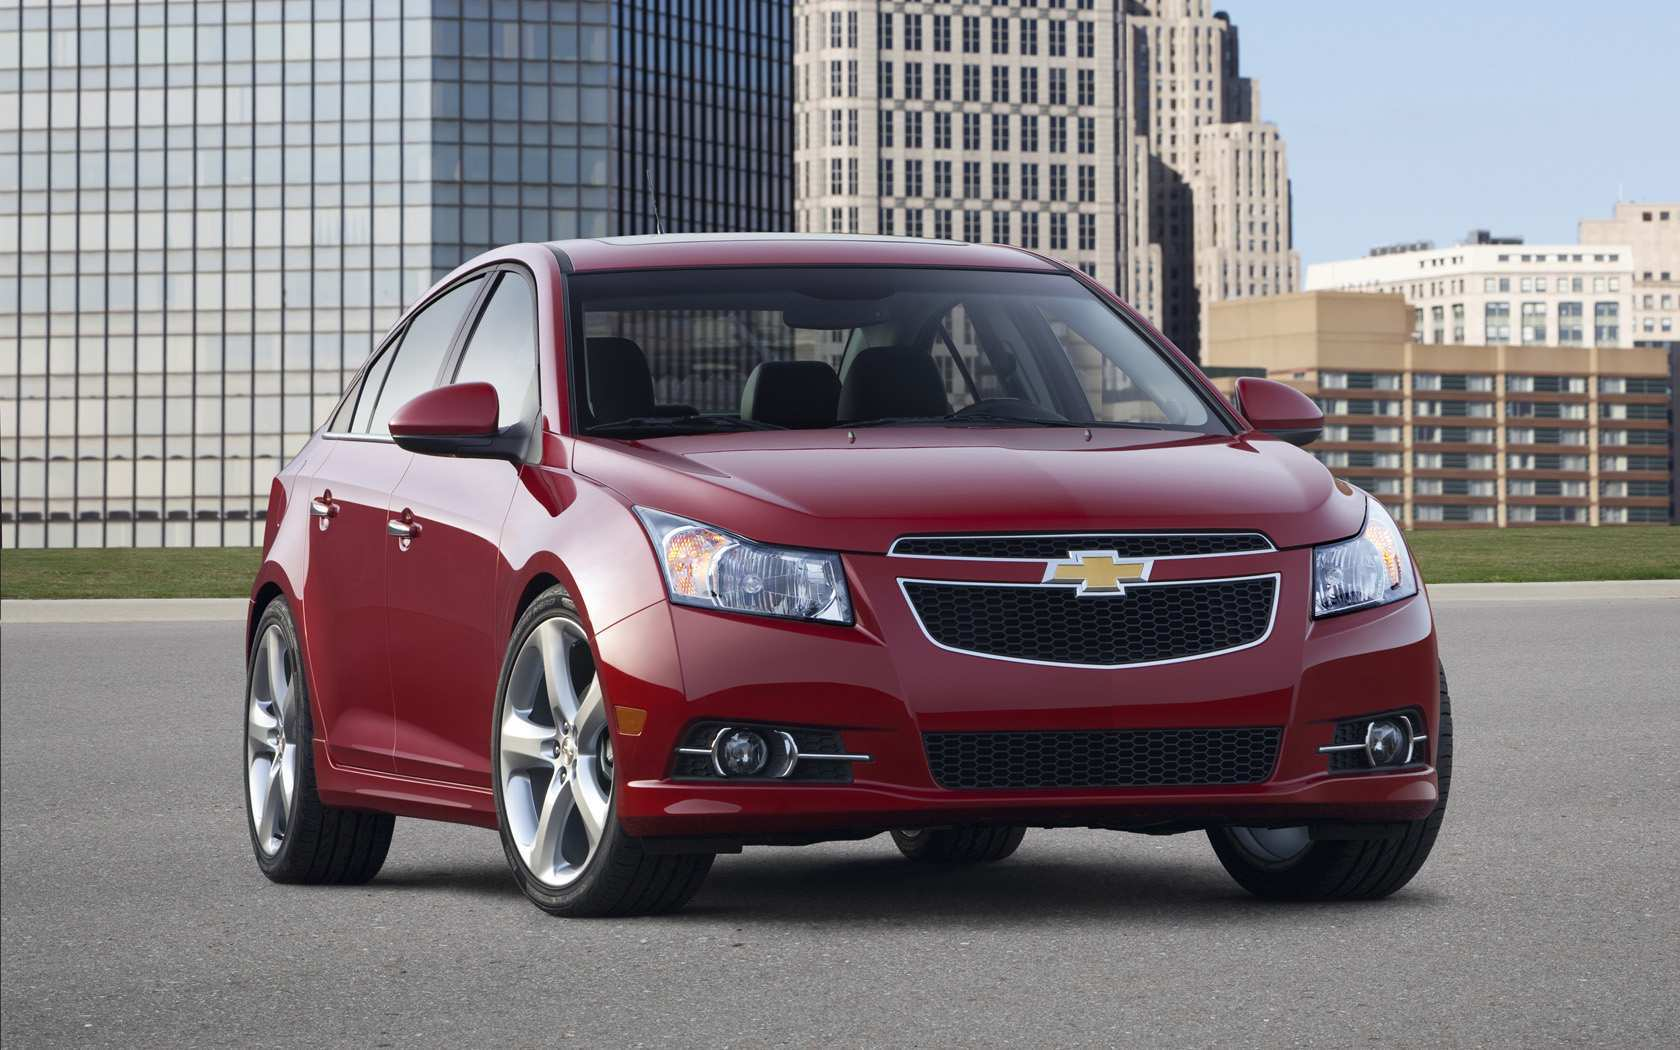 14 Concept of Chevy Cruze Wallpapers Picture with Chevy Cruze Wallpapers